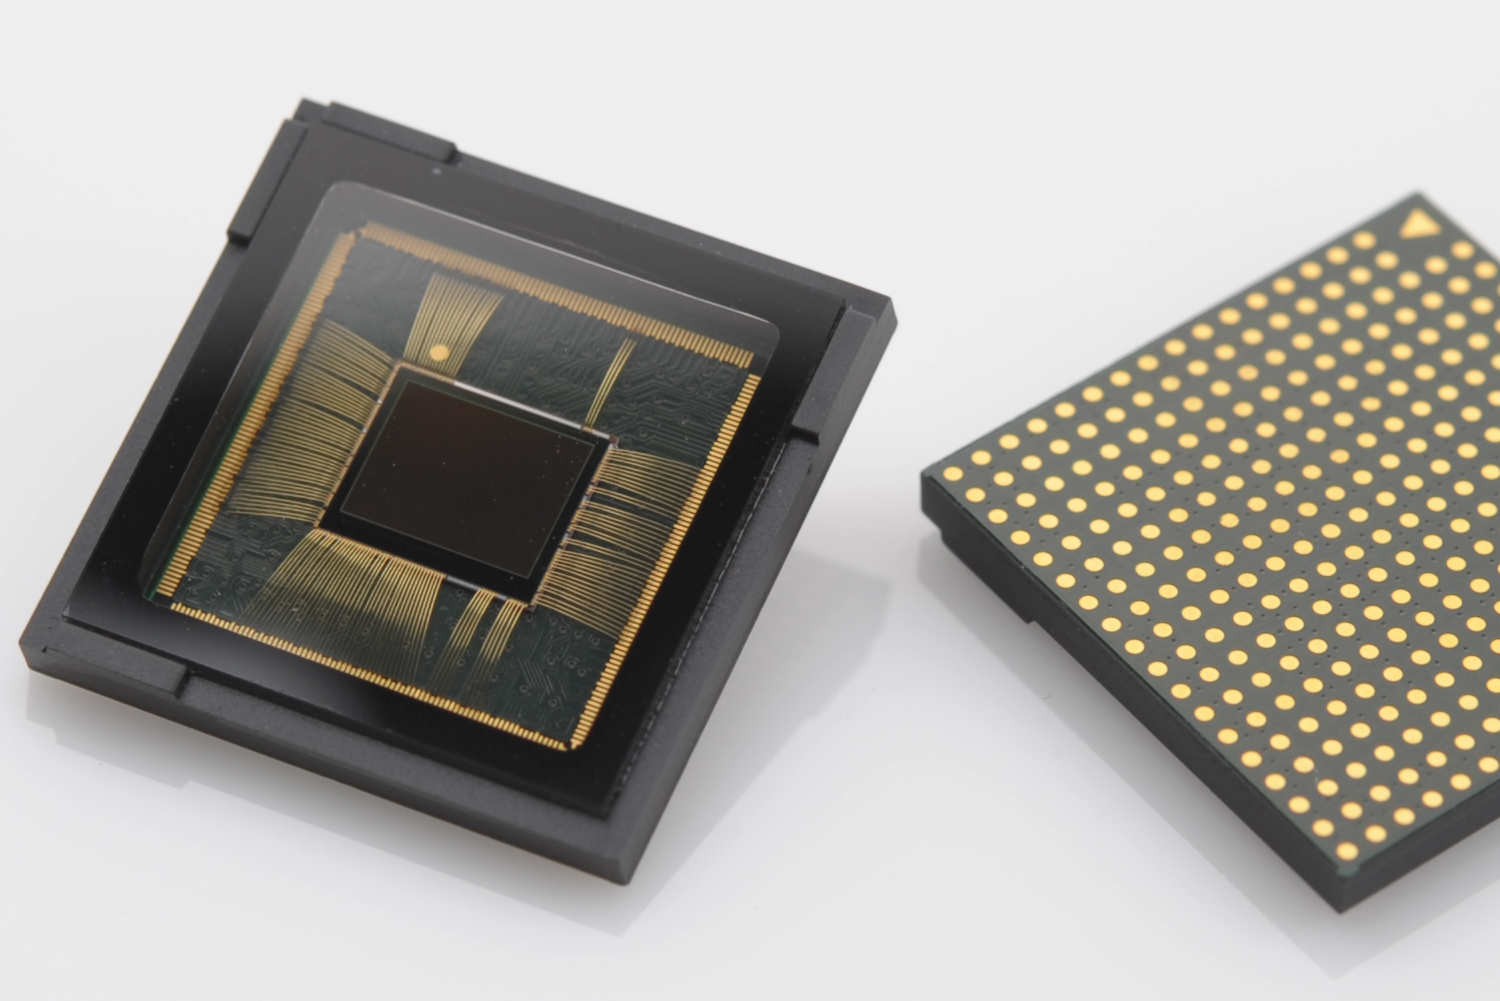 This Is The Super Dual Pixel Camera Sensor Inside Your